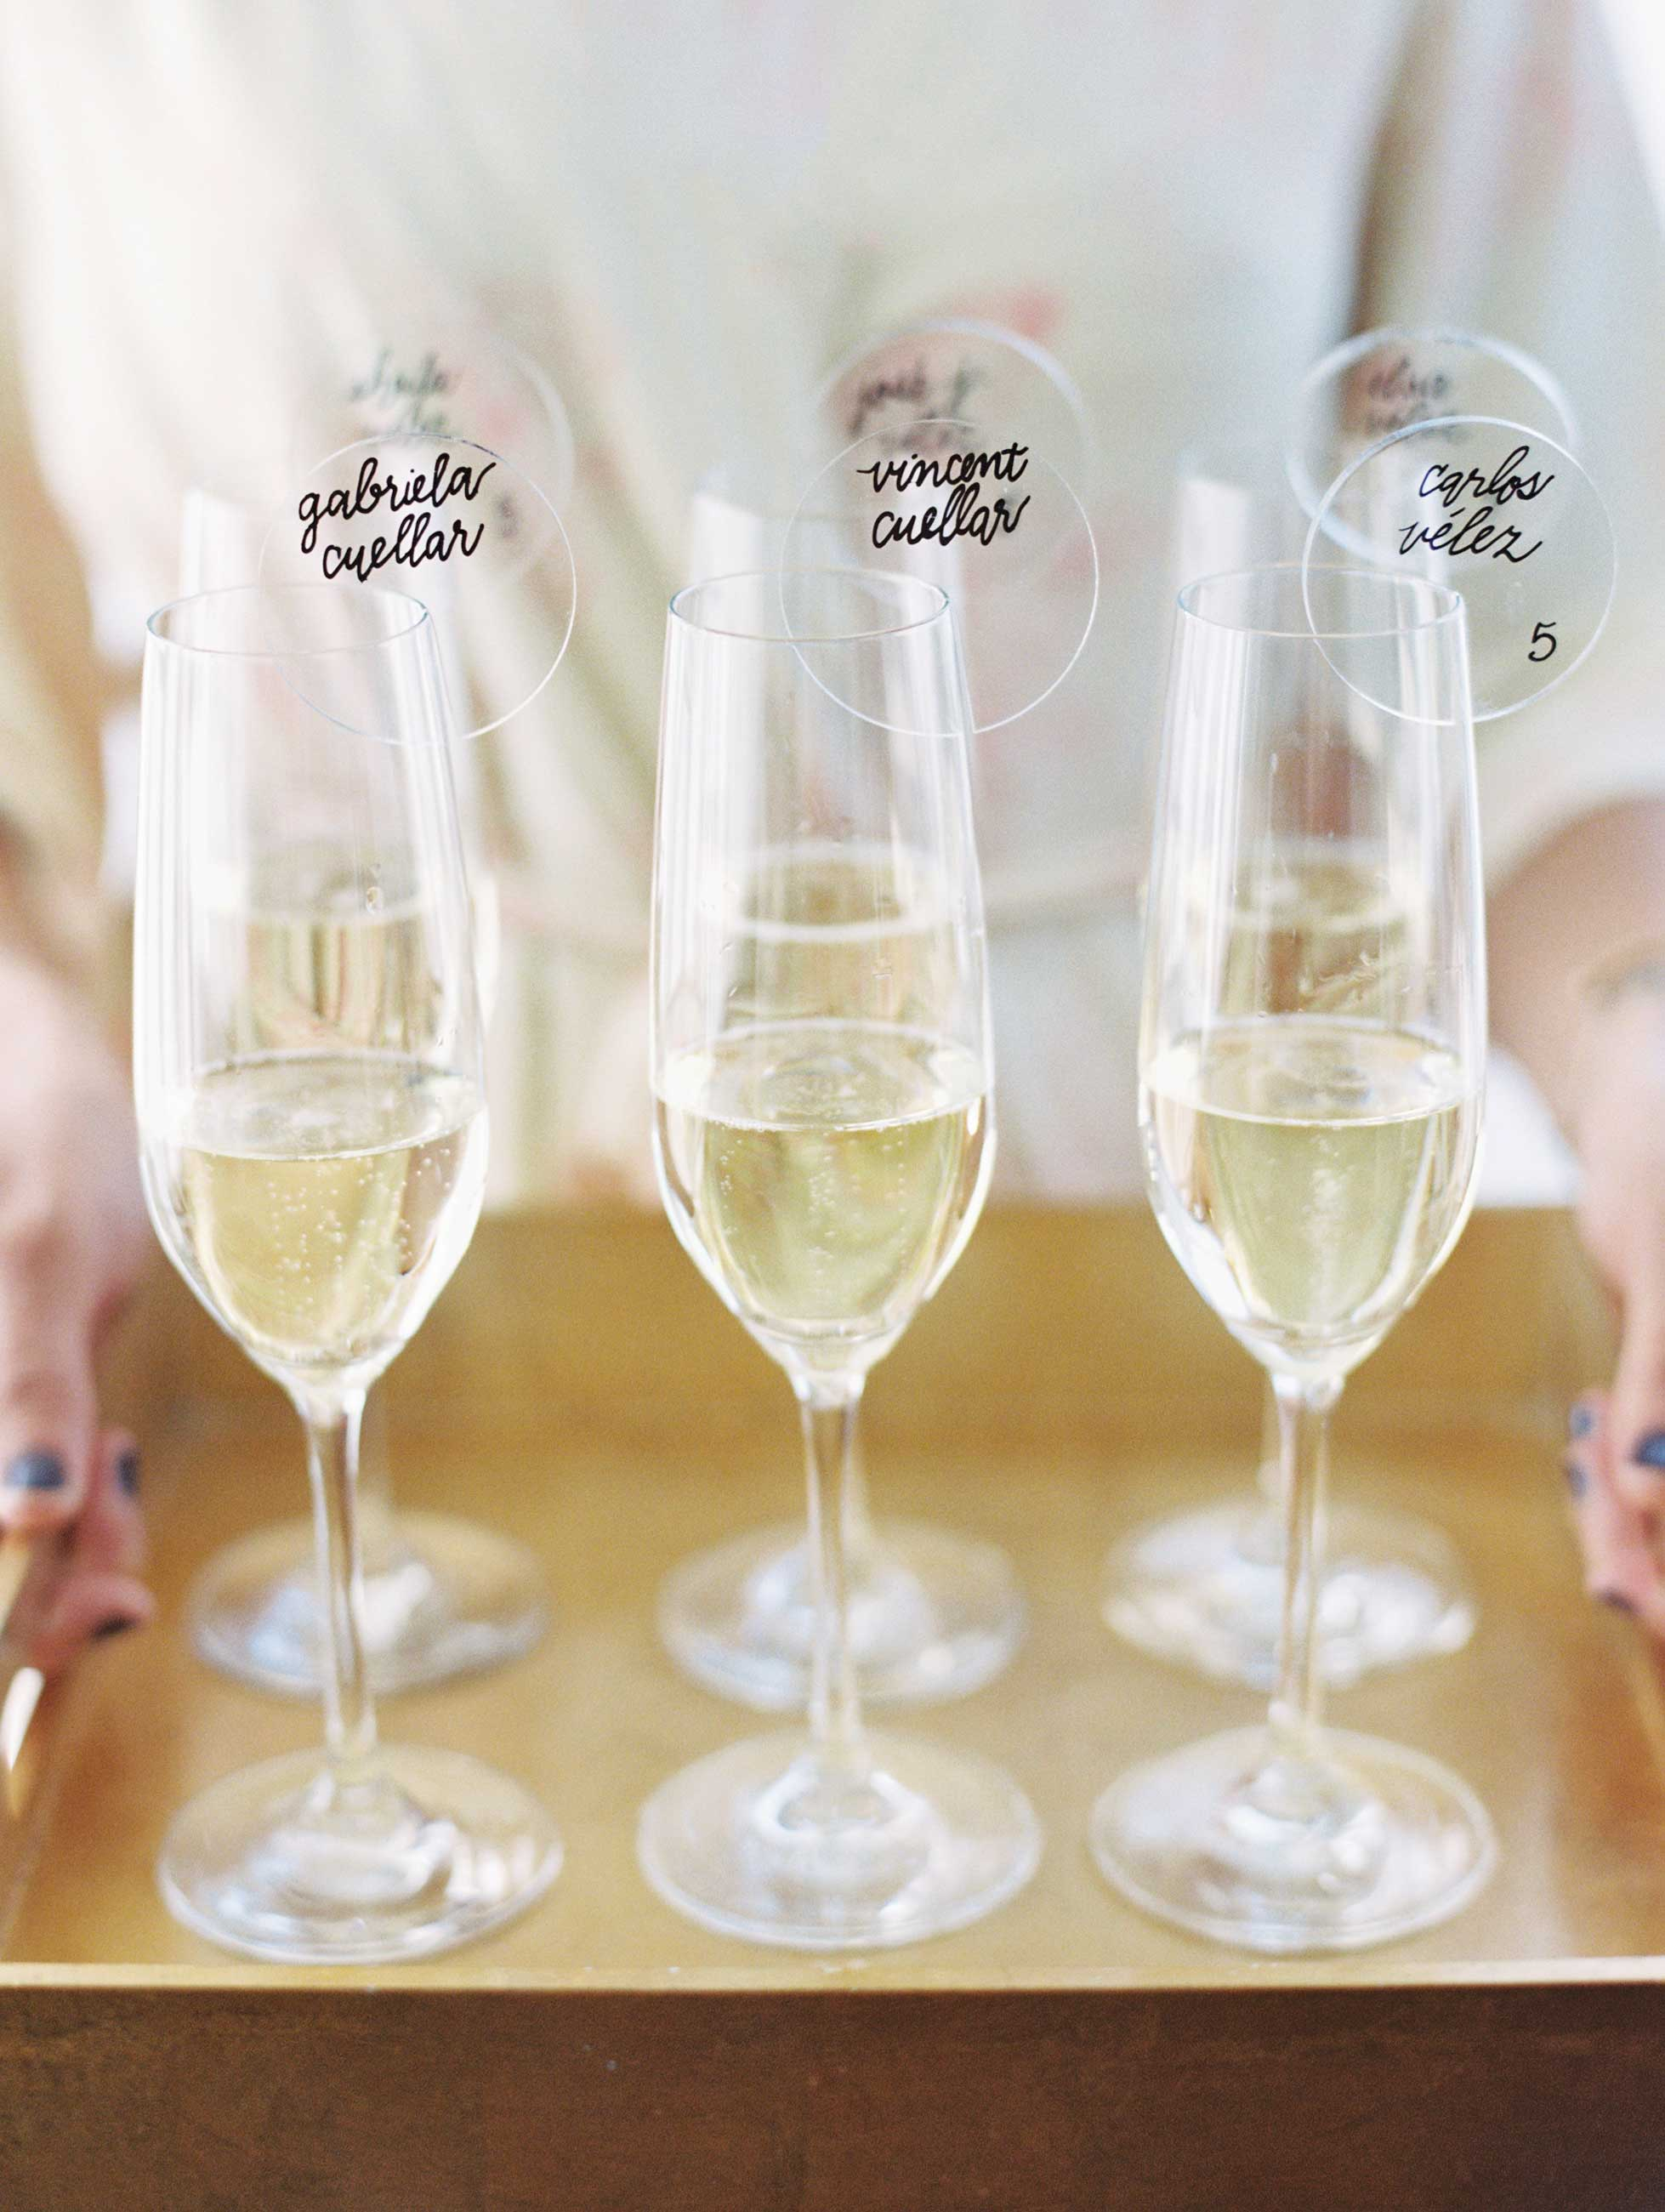 Escort cards on lucite on champagne glasses spring 2016 issue of Inside Weddings magazine